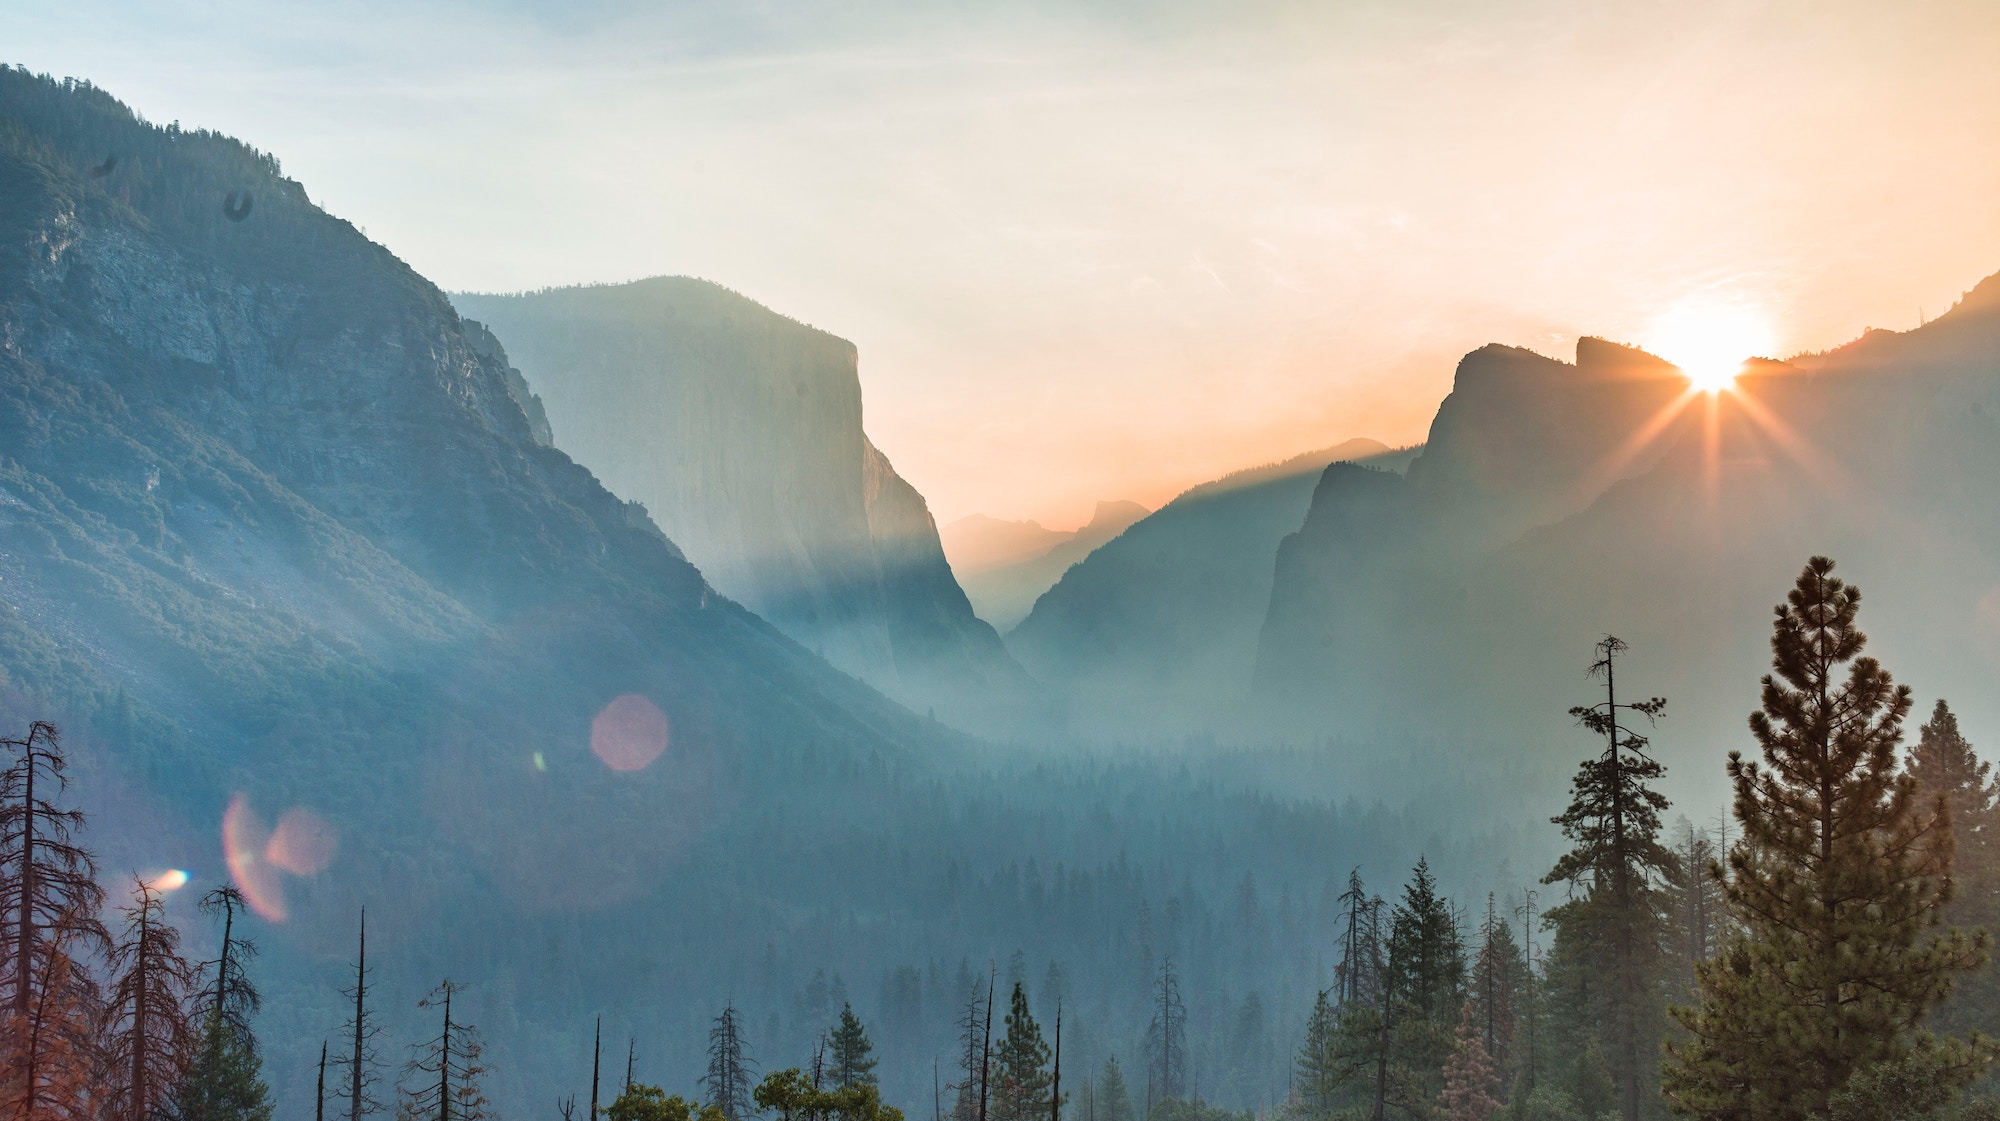 Gorgeous sunrise over Yosemite mountains